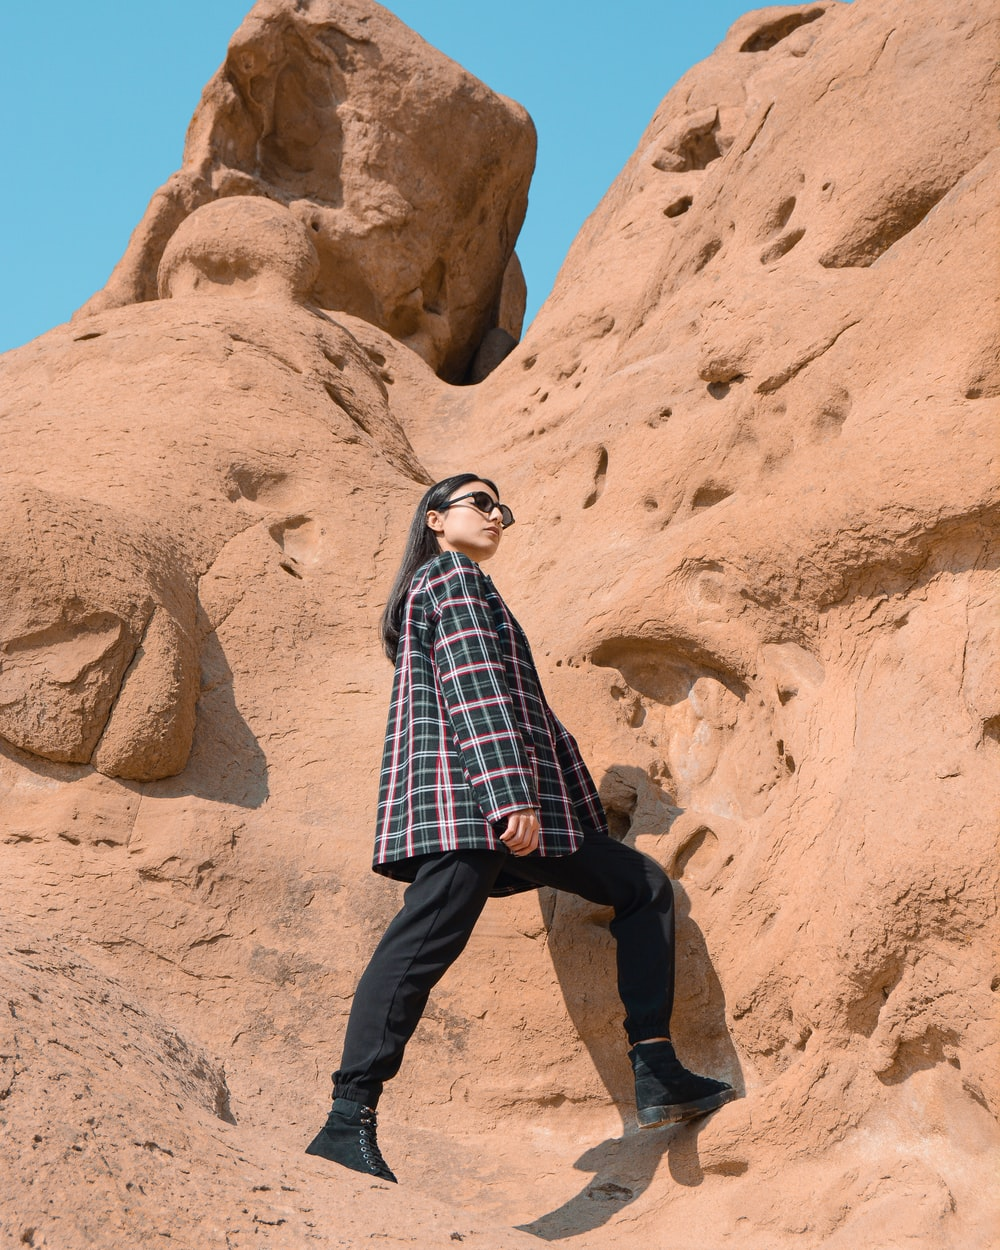 man in blue and white plaid dress shirt and black pants standing on brown rock formation